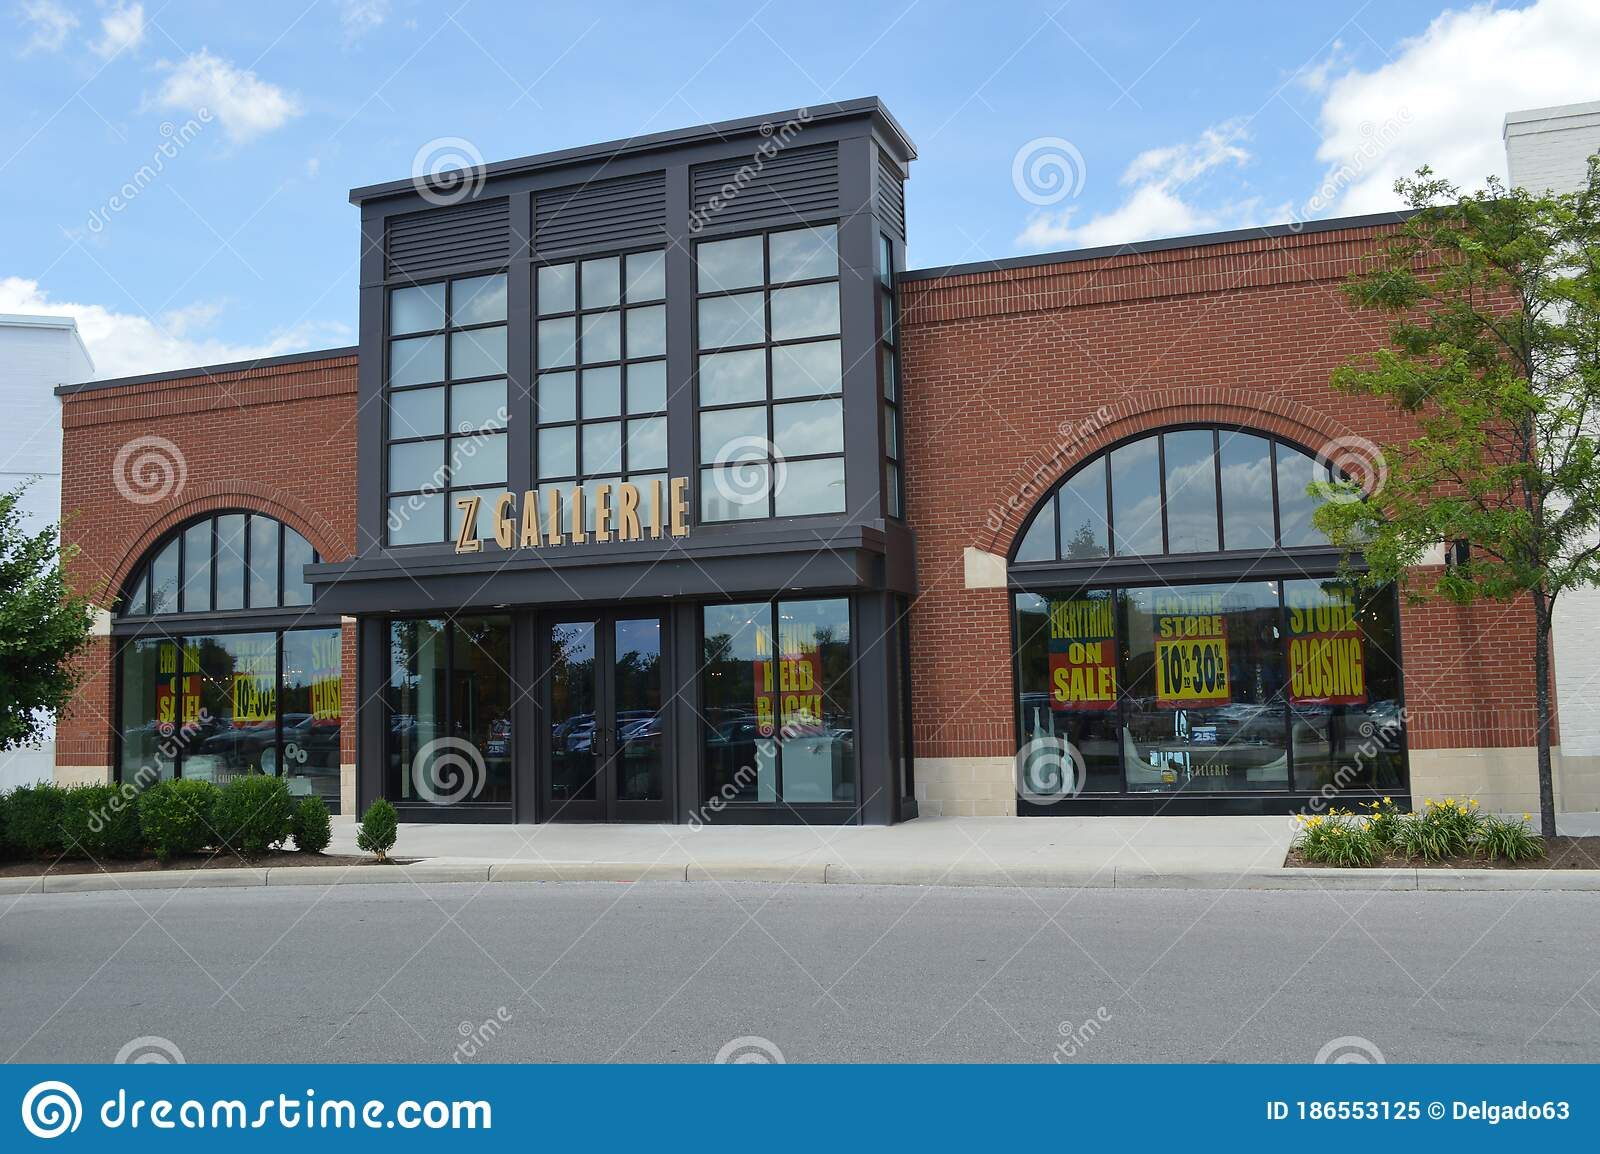 Z Gallerie Is A Contemporary Home Goods Retailer For Furniture Editorial Image Image Of Mall Brand 186553125